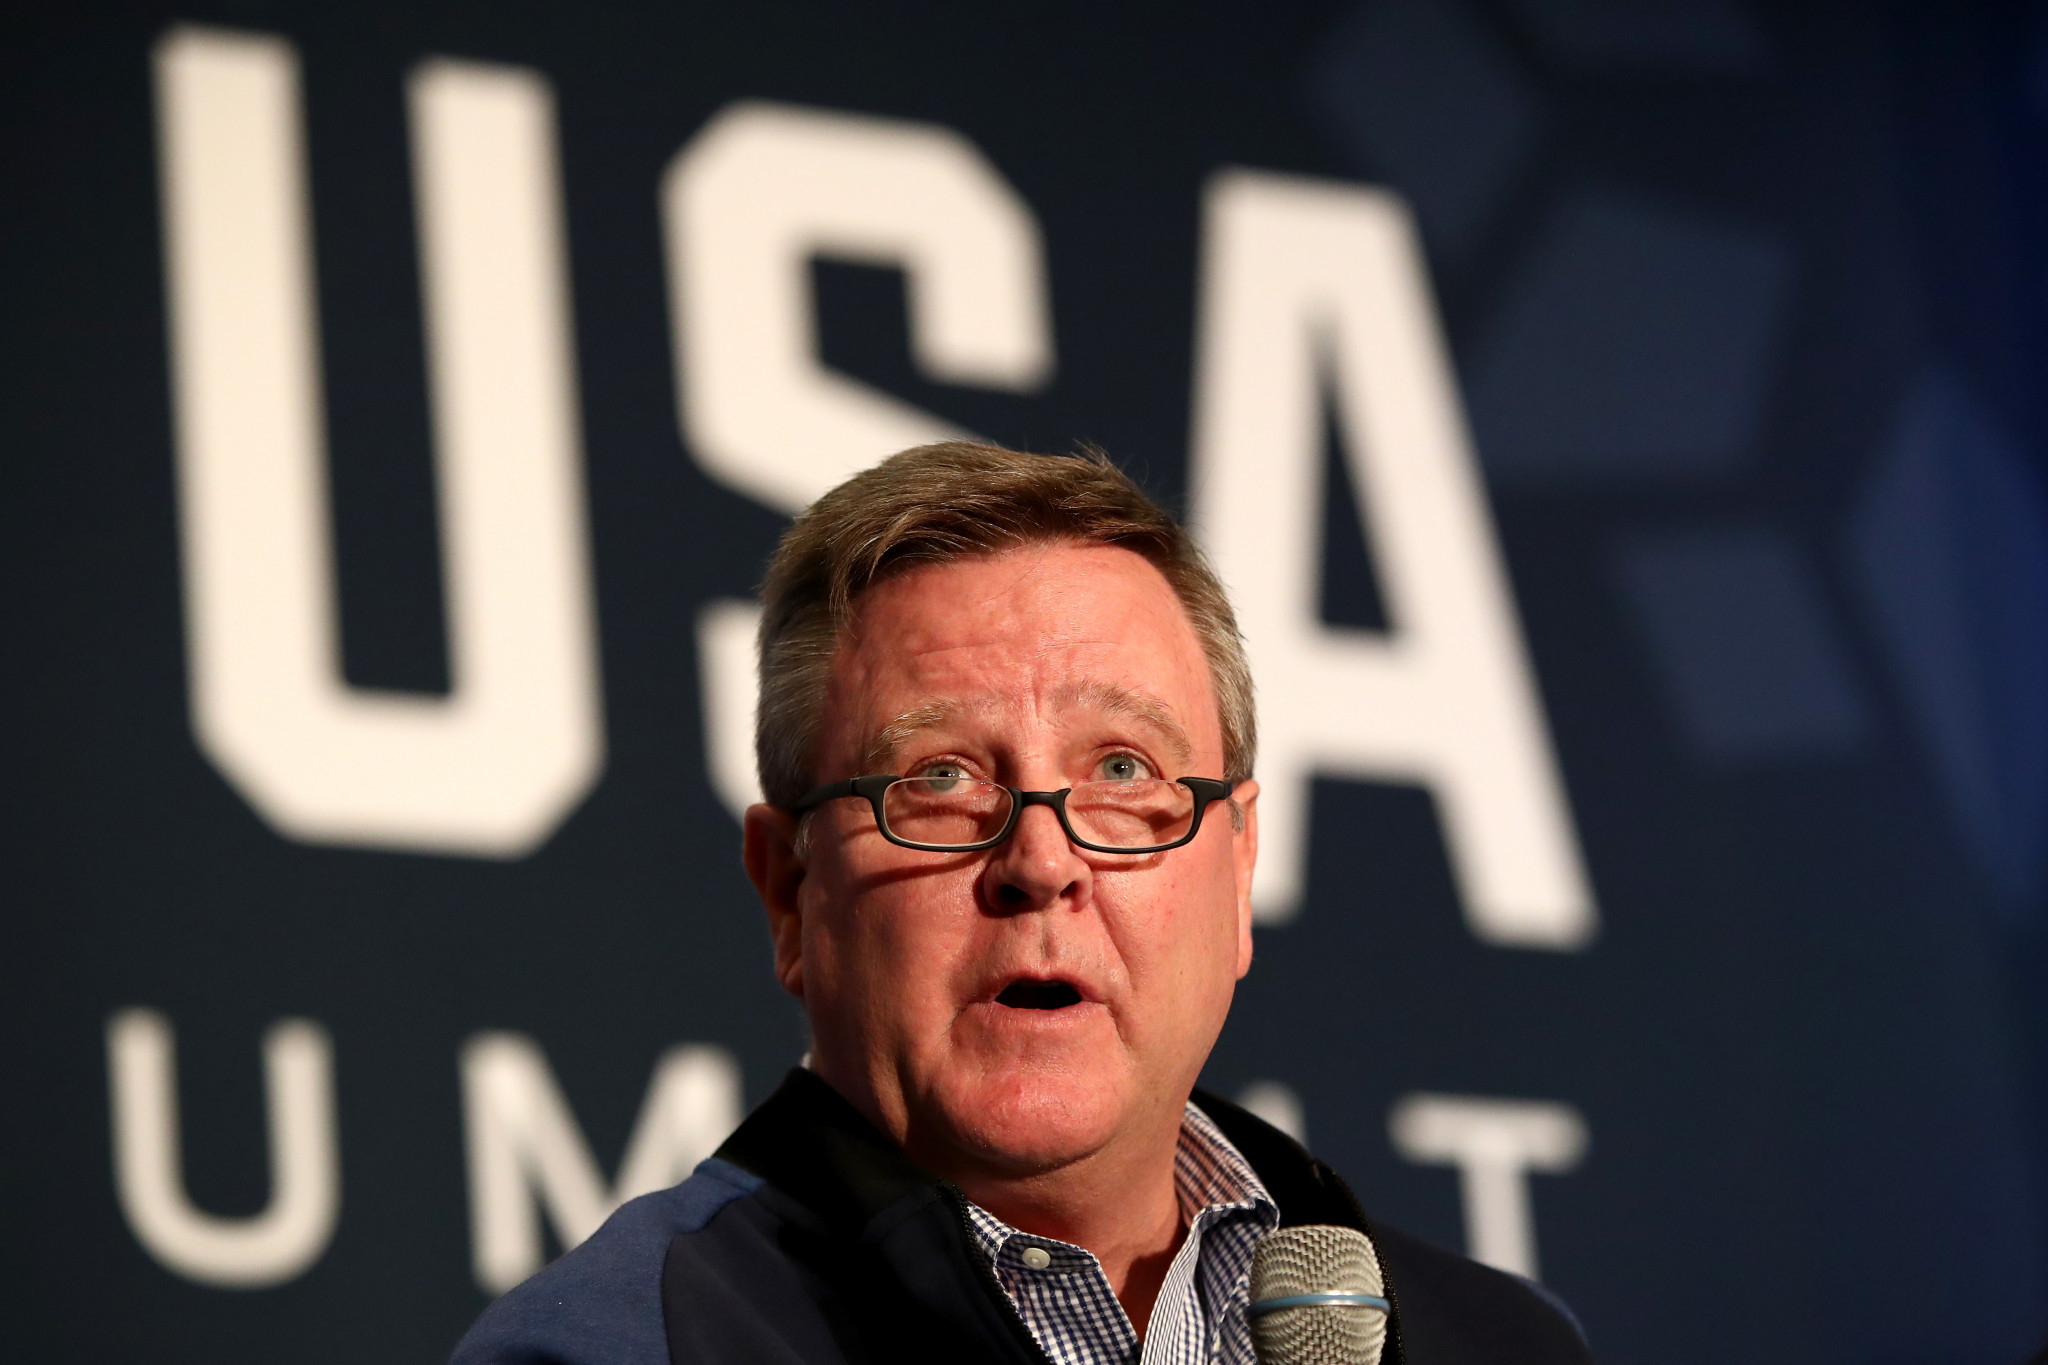 Details of the severance package given to former USOC chief executive Scott Blackmun have been revealed ©Getty Images